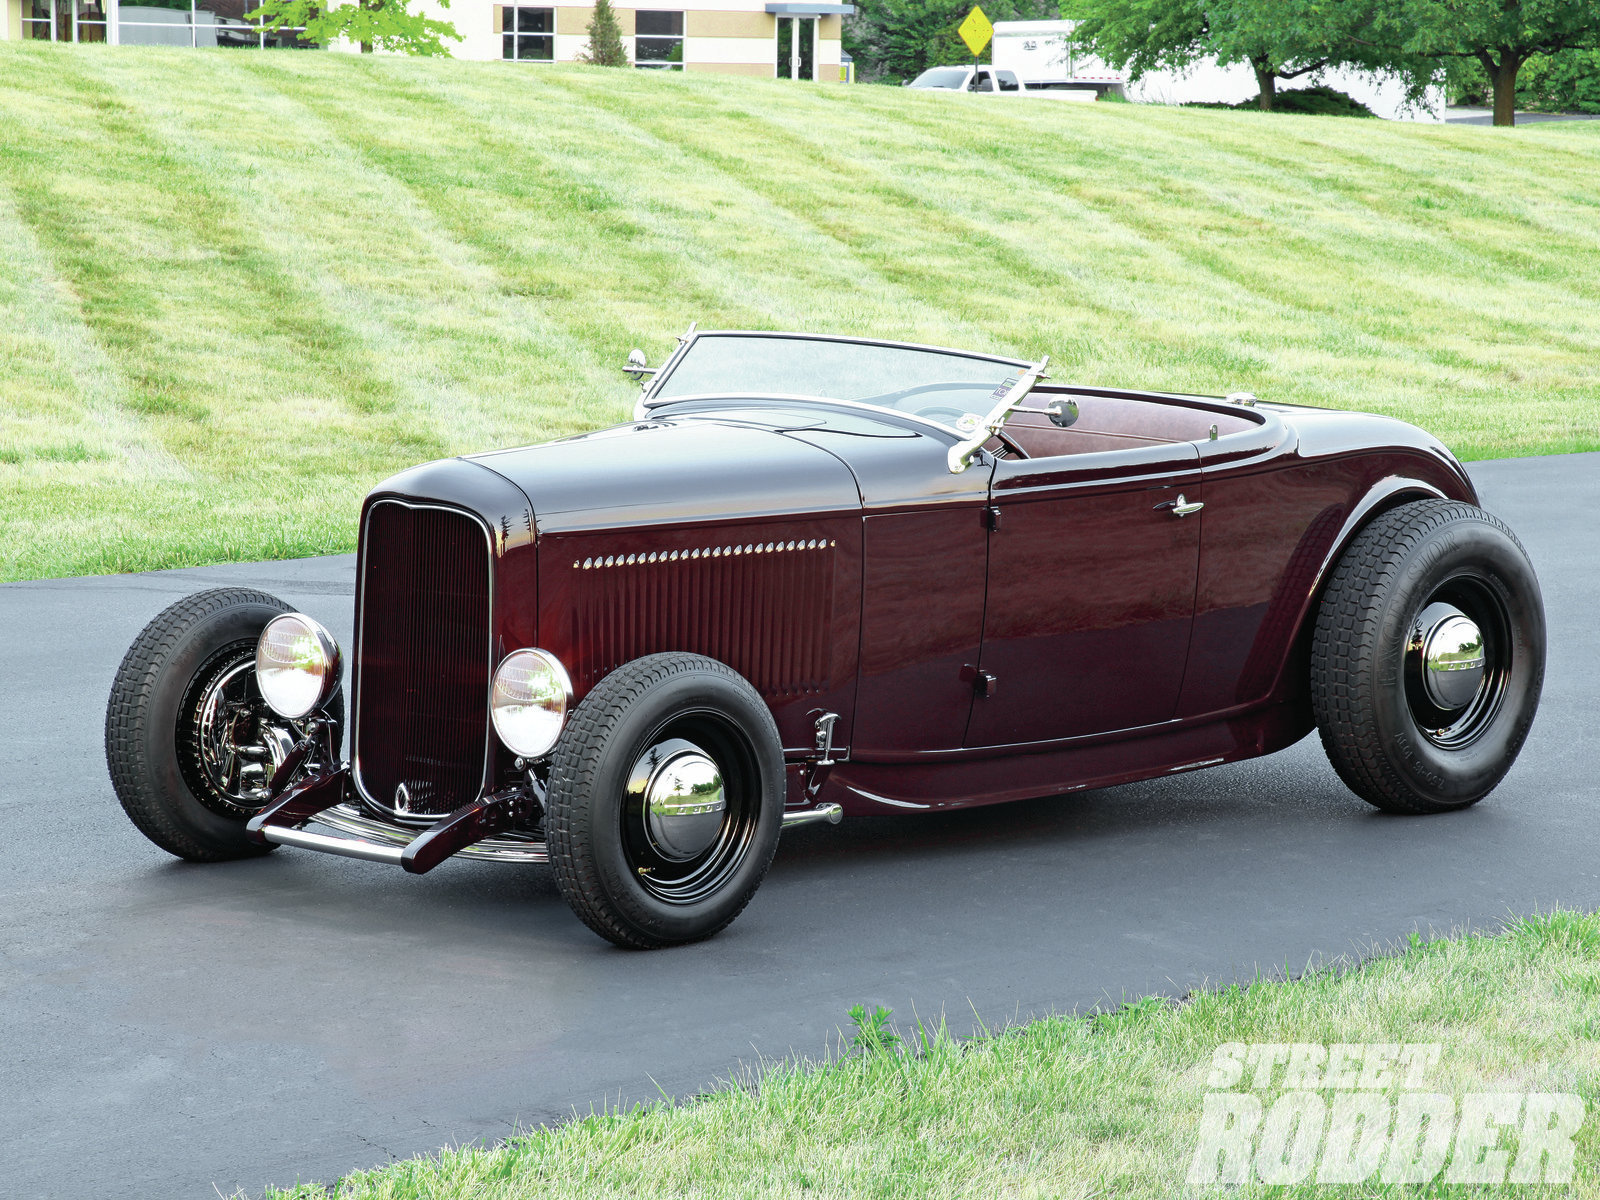 1932 Ford Roadster hot rod rods retro wallpaper background